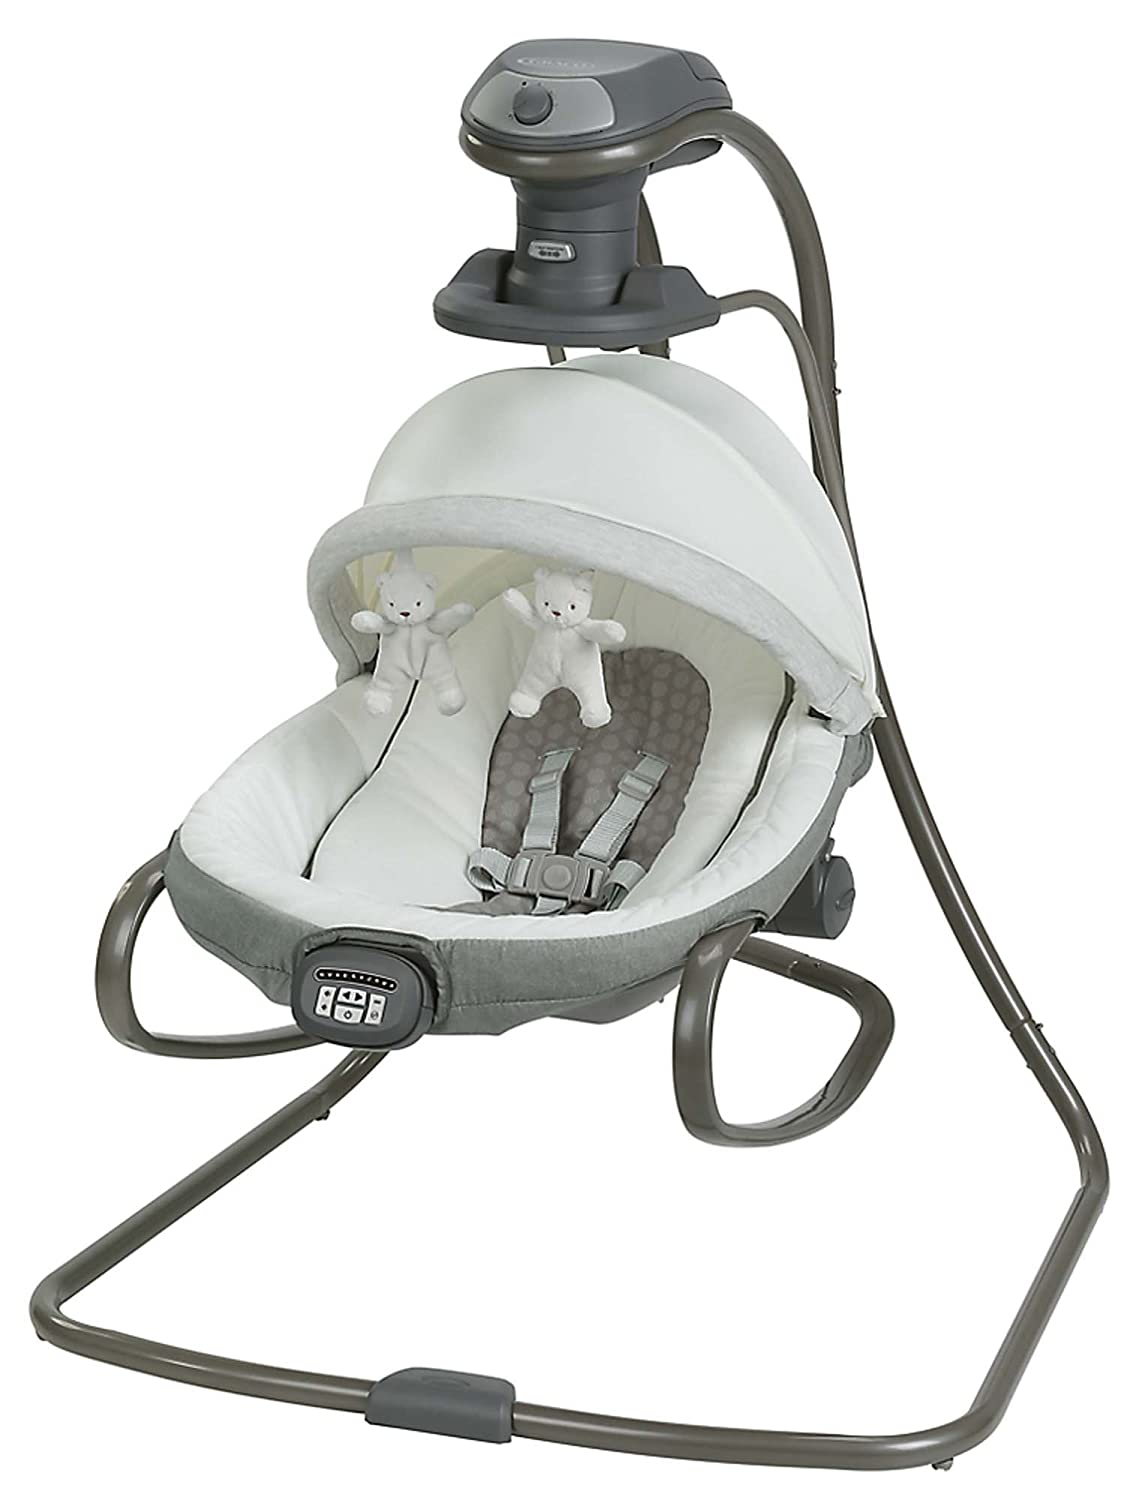 Graco Duet Oasis with Soothe Surround Baby Swing, Davis 1967060